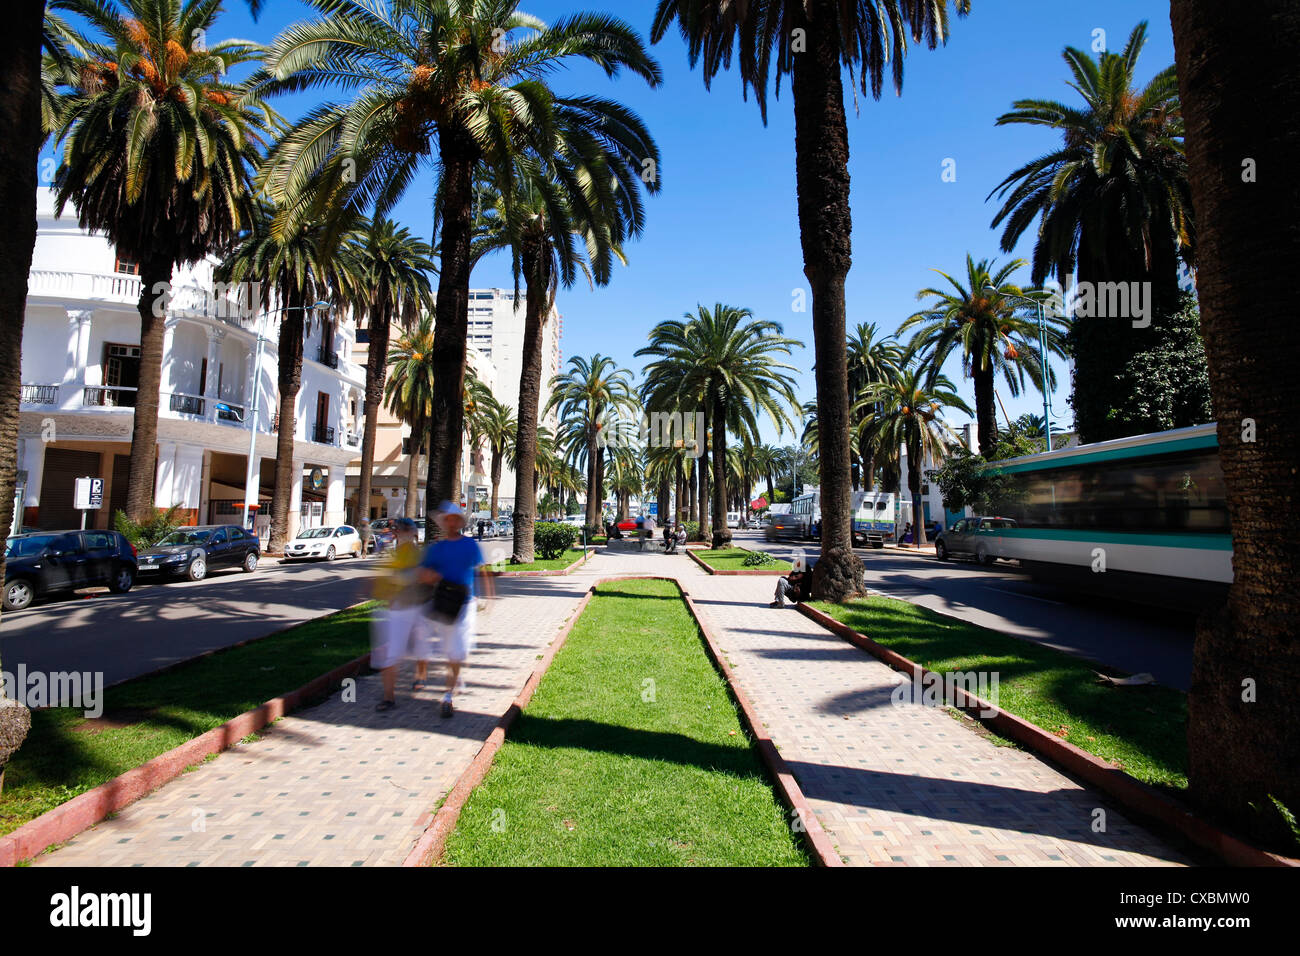 Le Boulevard de Rachidi, une large rue bordée d'arbres typiques dans le quartier smart Lusitania, Casablanca, Photo Stock